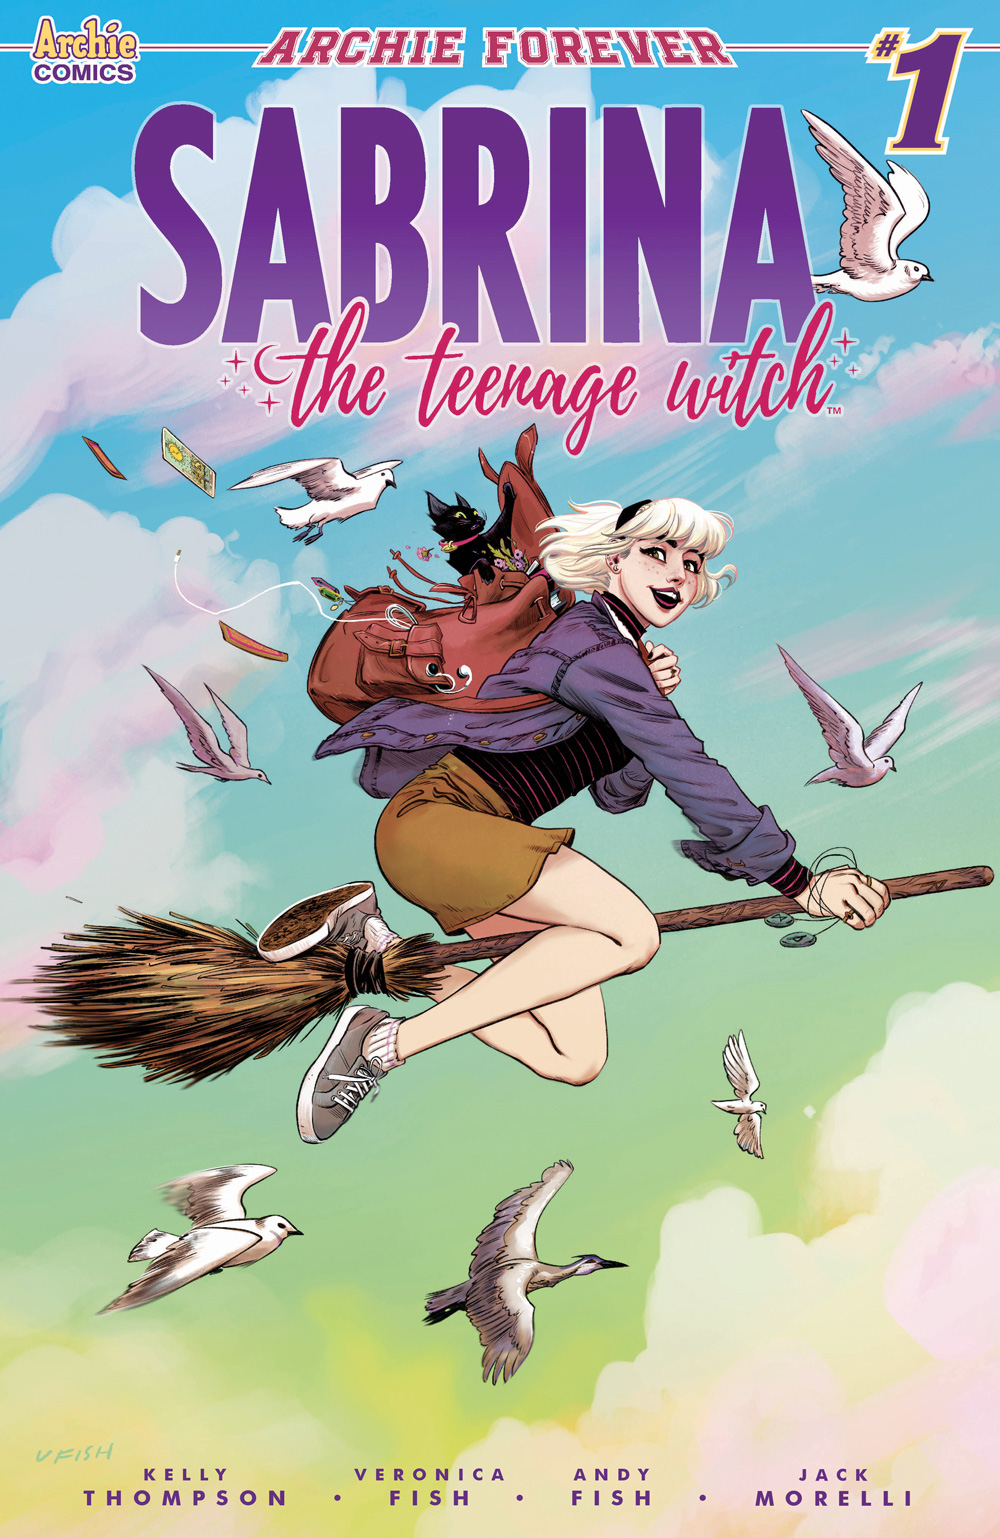 Sabrina The Teenage Witch Is Back In An All New Comic Series Archie Comics